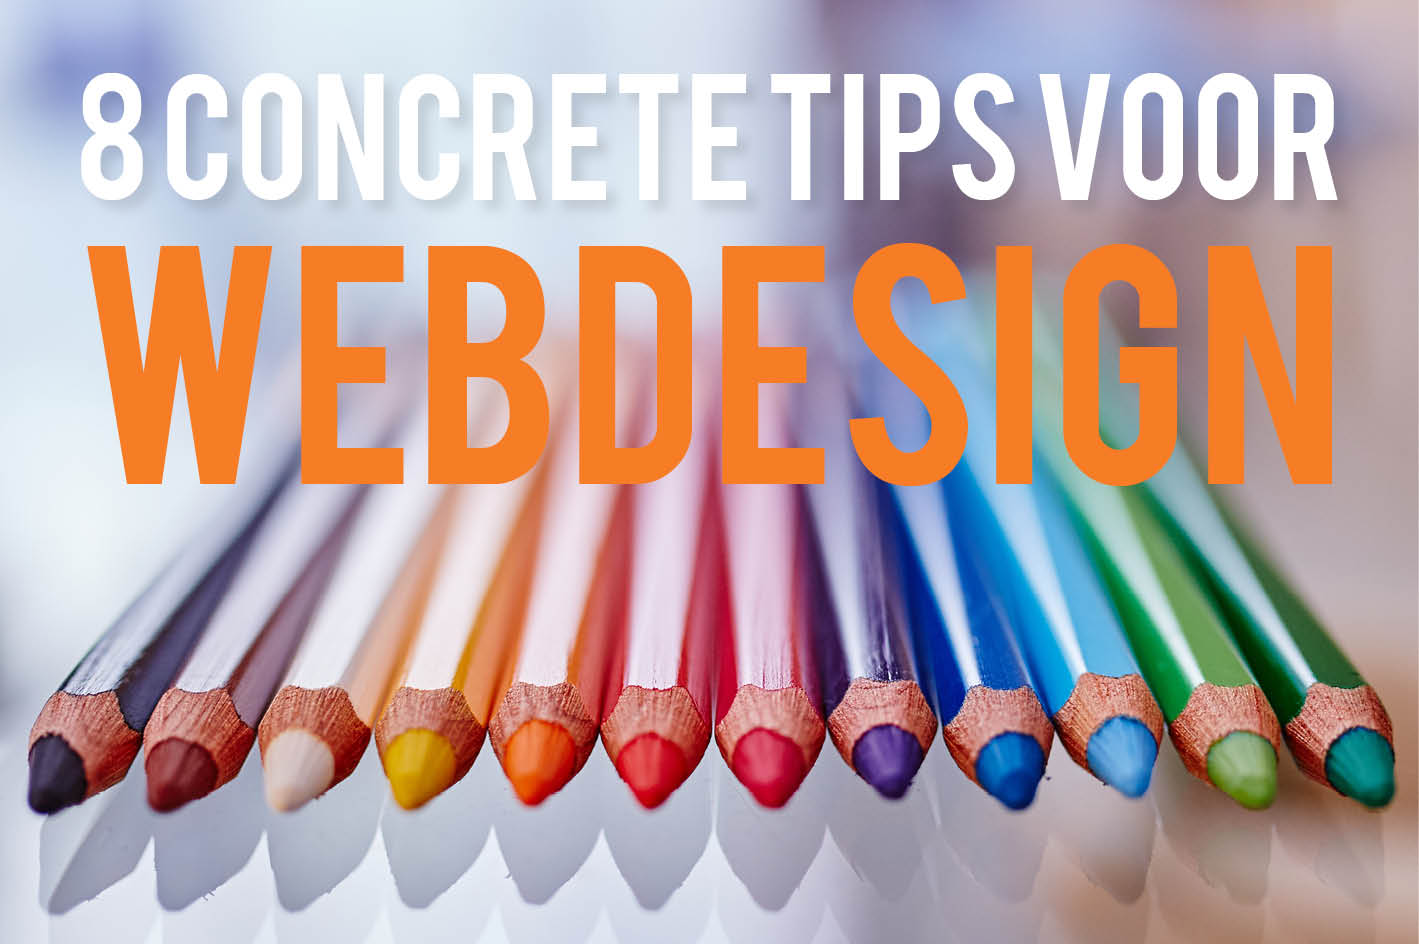 8_concrete_tips_voor_webdesign..jpg